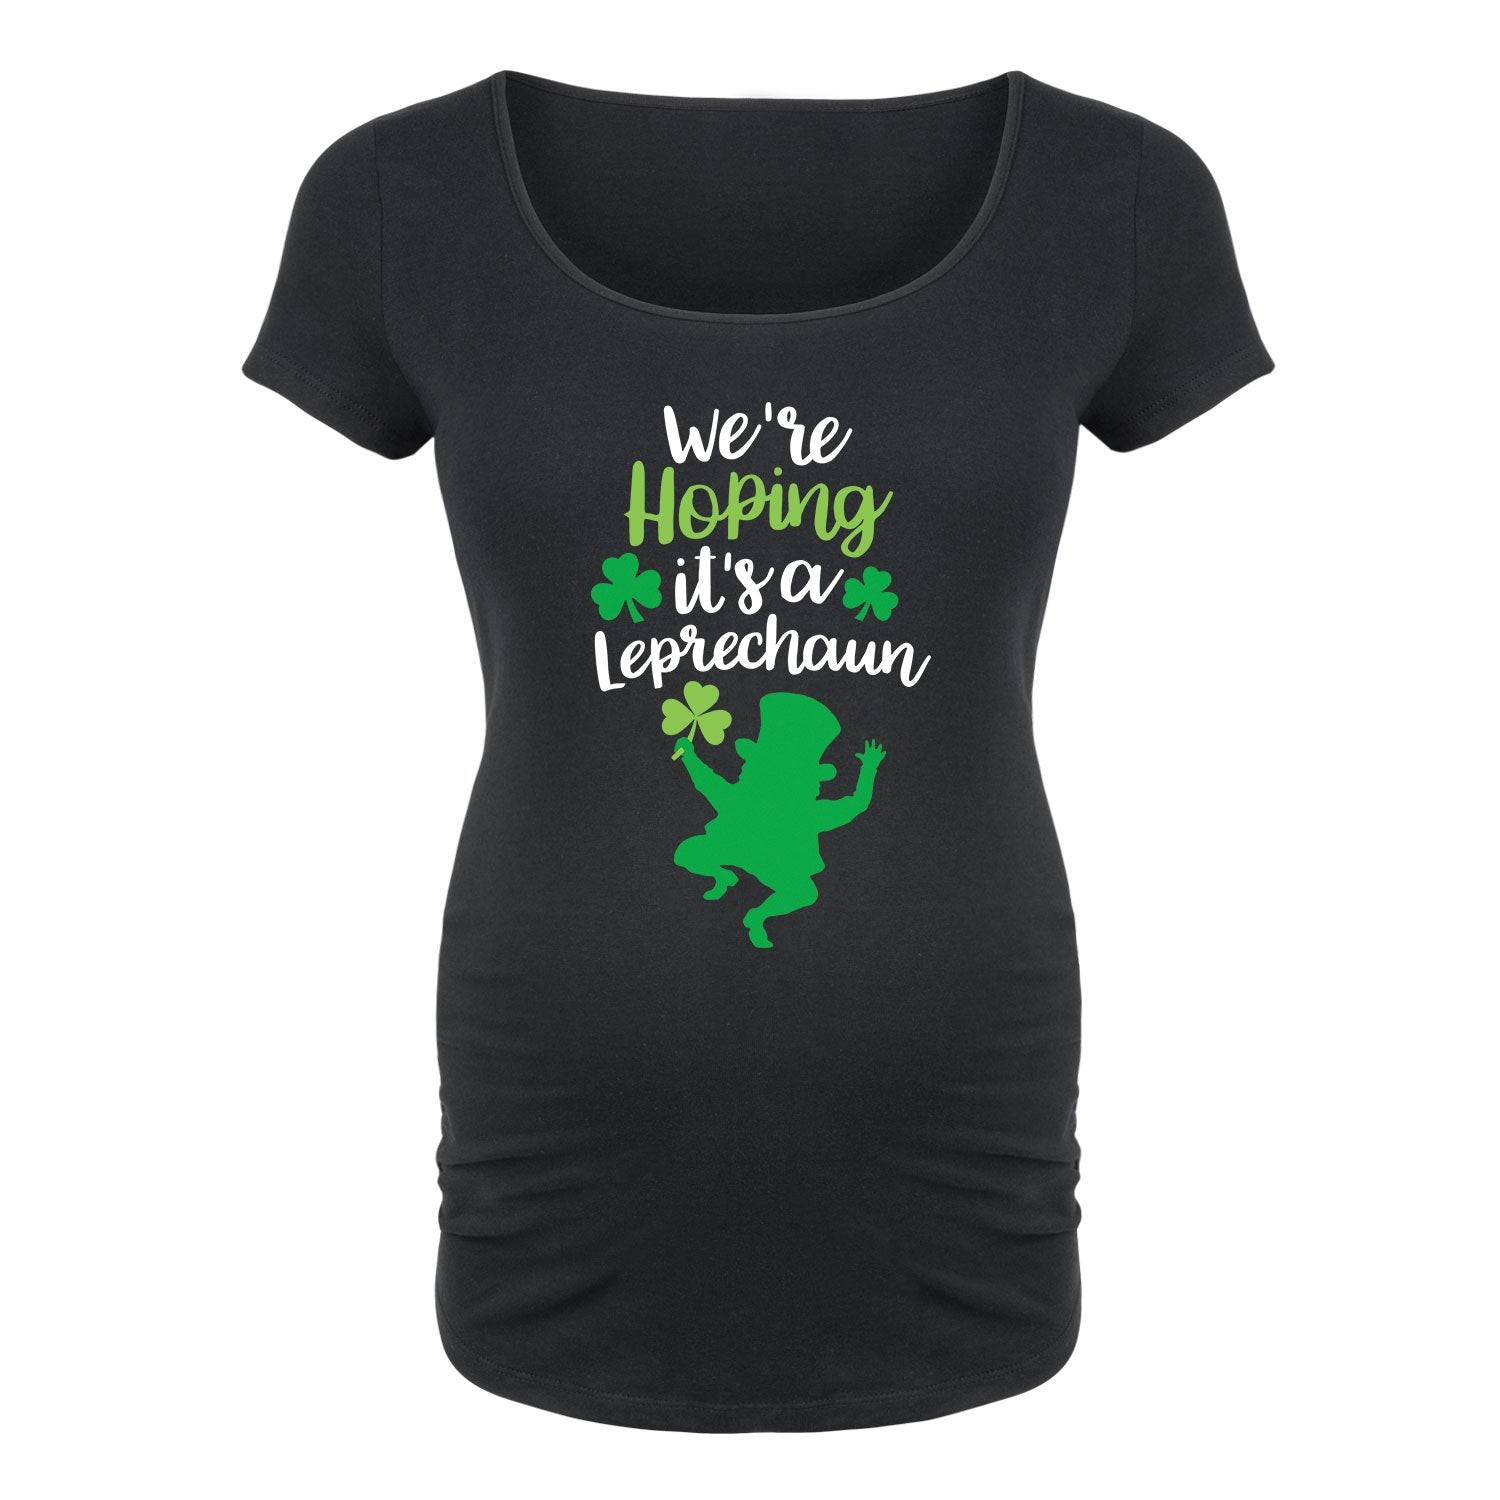 We're Hoping its a Leprechaun - Maternity Short Sleeve T-Shirt